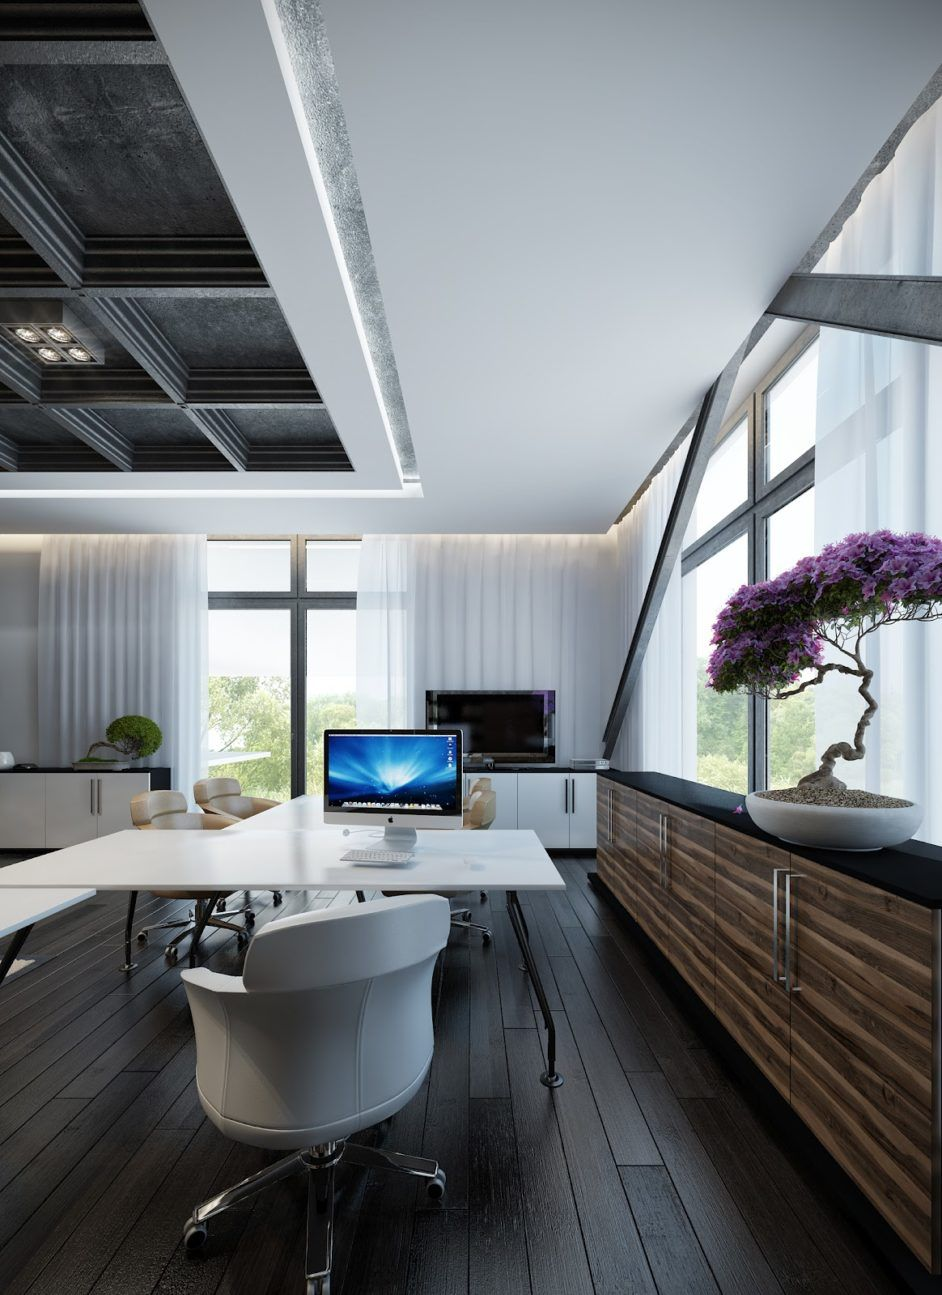 workspace decor ideas home comfortable home. Top 10 Awesome Home Office Design Ideas : Luxurious White Layout With Modern Desk And Egg Chair Workspace Decor Comfortable